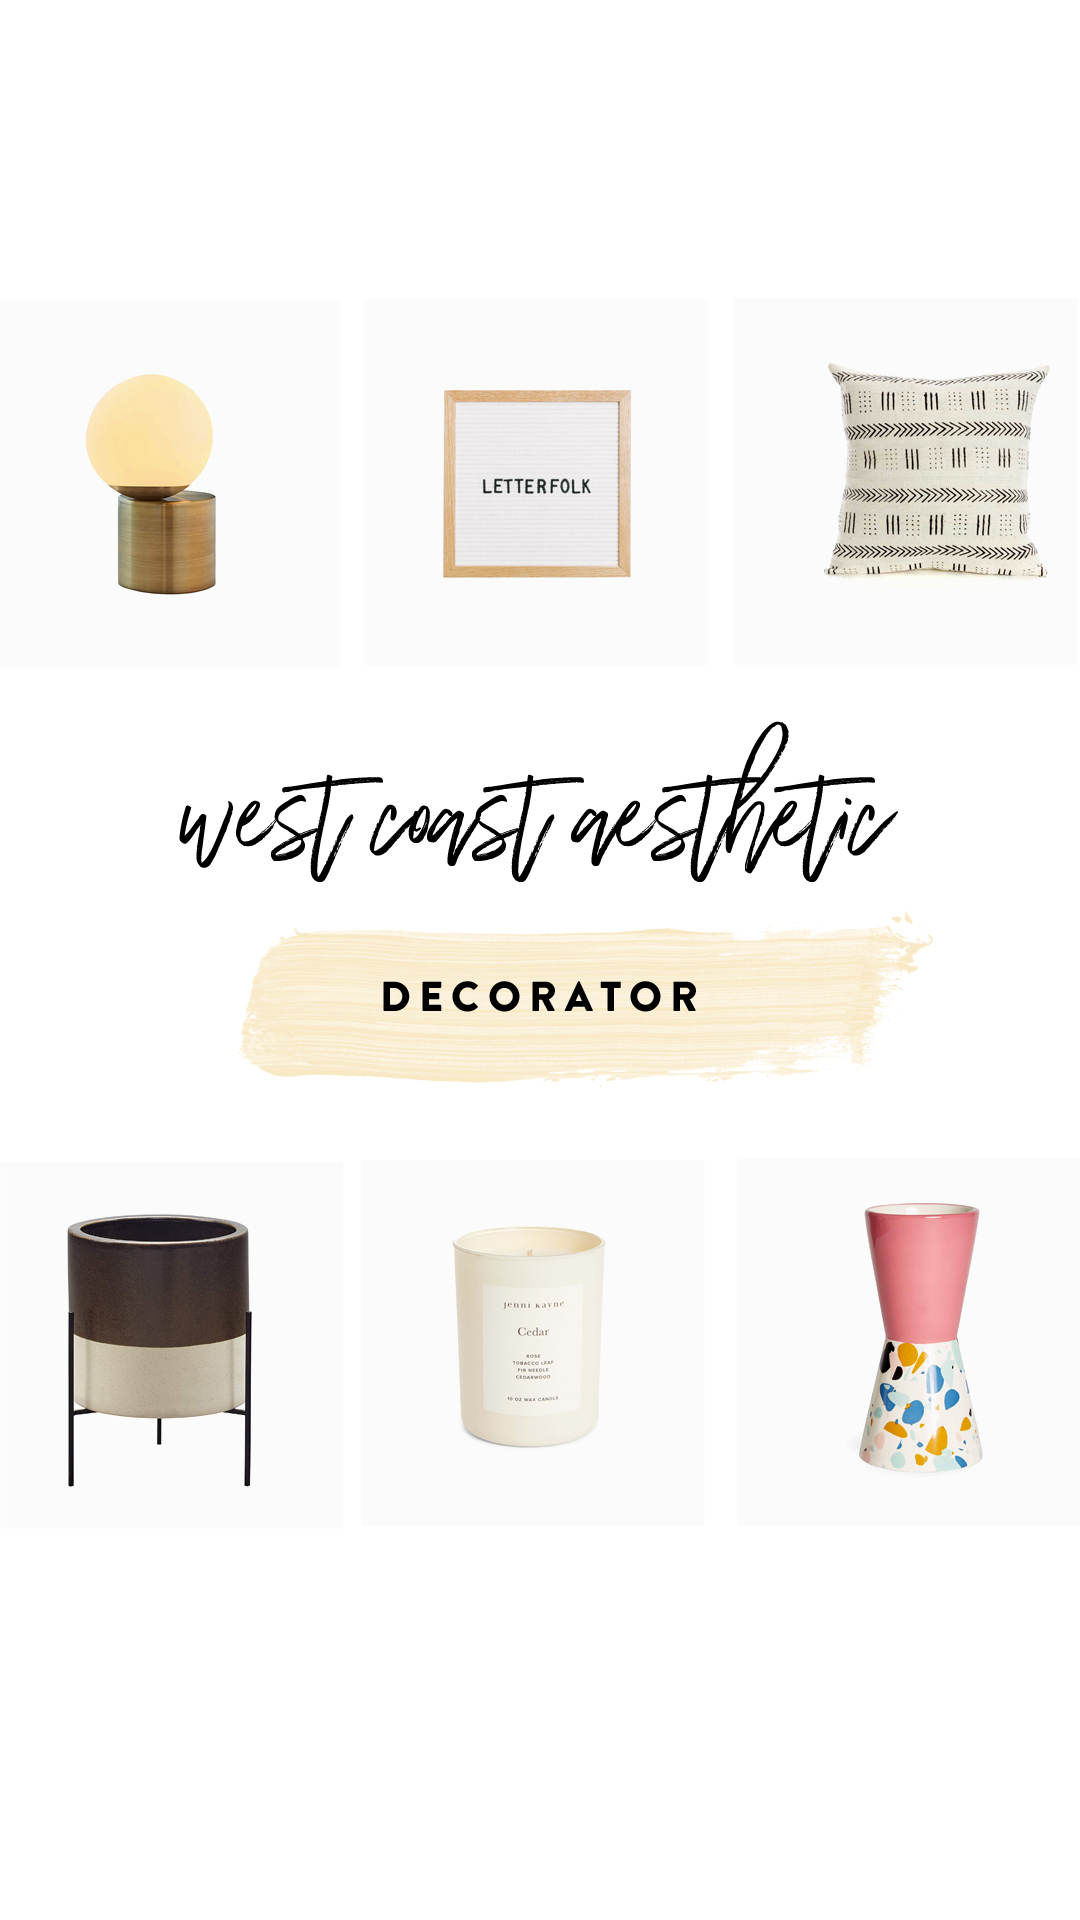 1.   Table Lamp   | 2.   Letterfolk Board   | 3.   Throw Pillow   | 4.   Planter   | 5.   Candle     | 6.   Decorative Vase